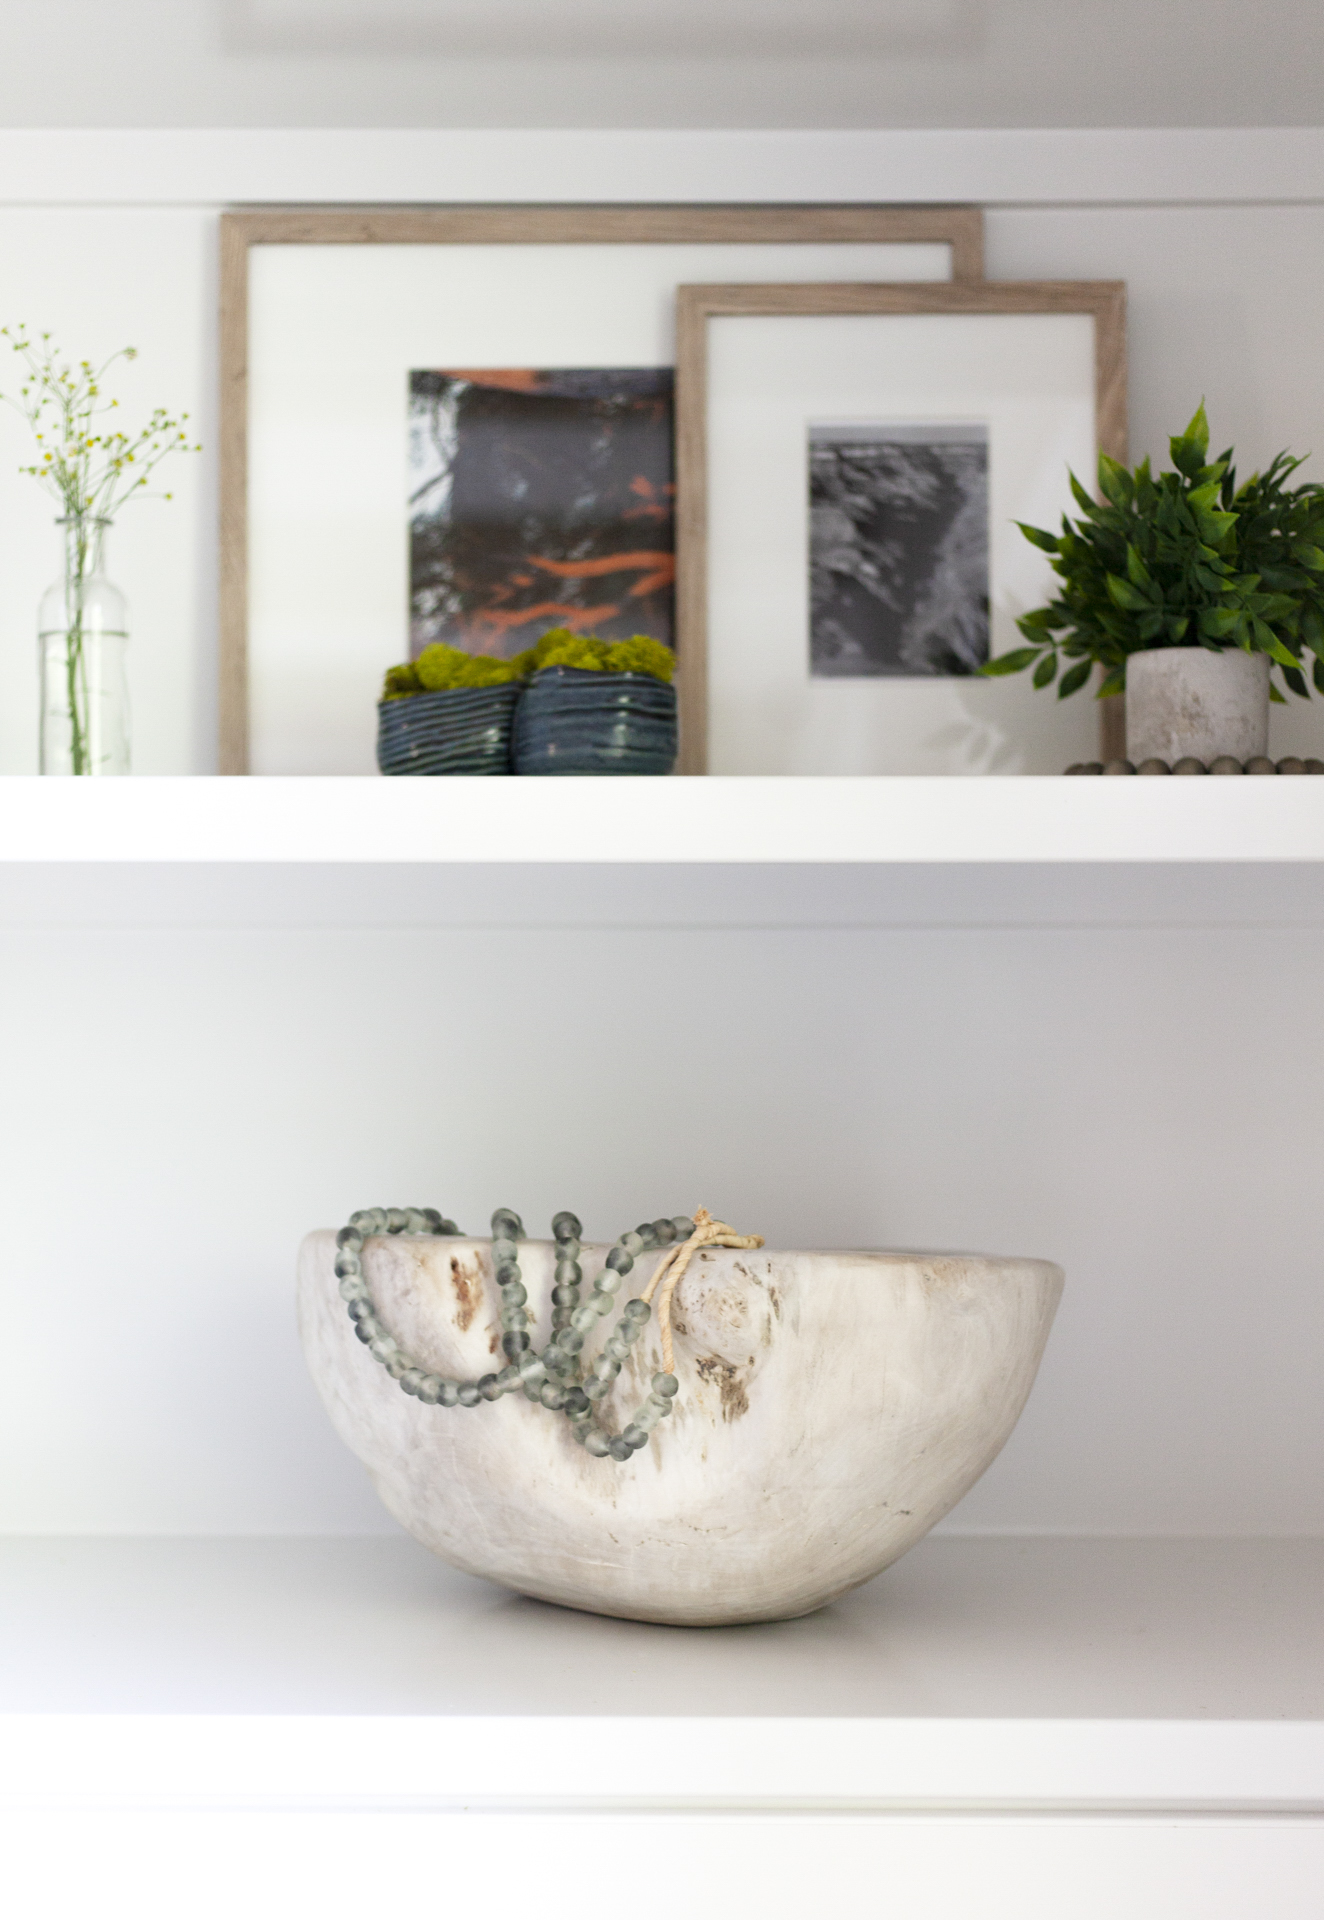 before-and-after-home-reveal-scout-and-nimble-lake-view-luxe-country-interior-design-built-in-shelves-shelf-styling-beads-56.jpg